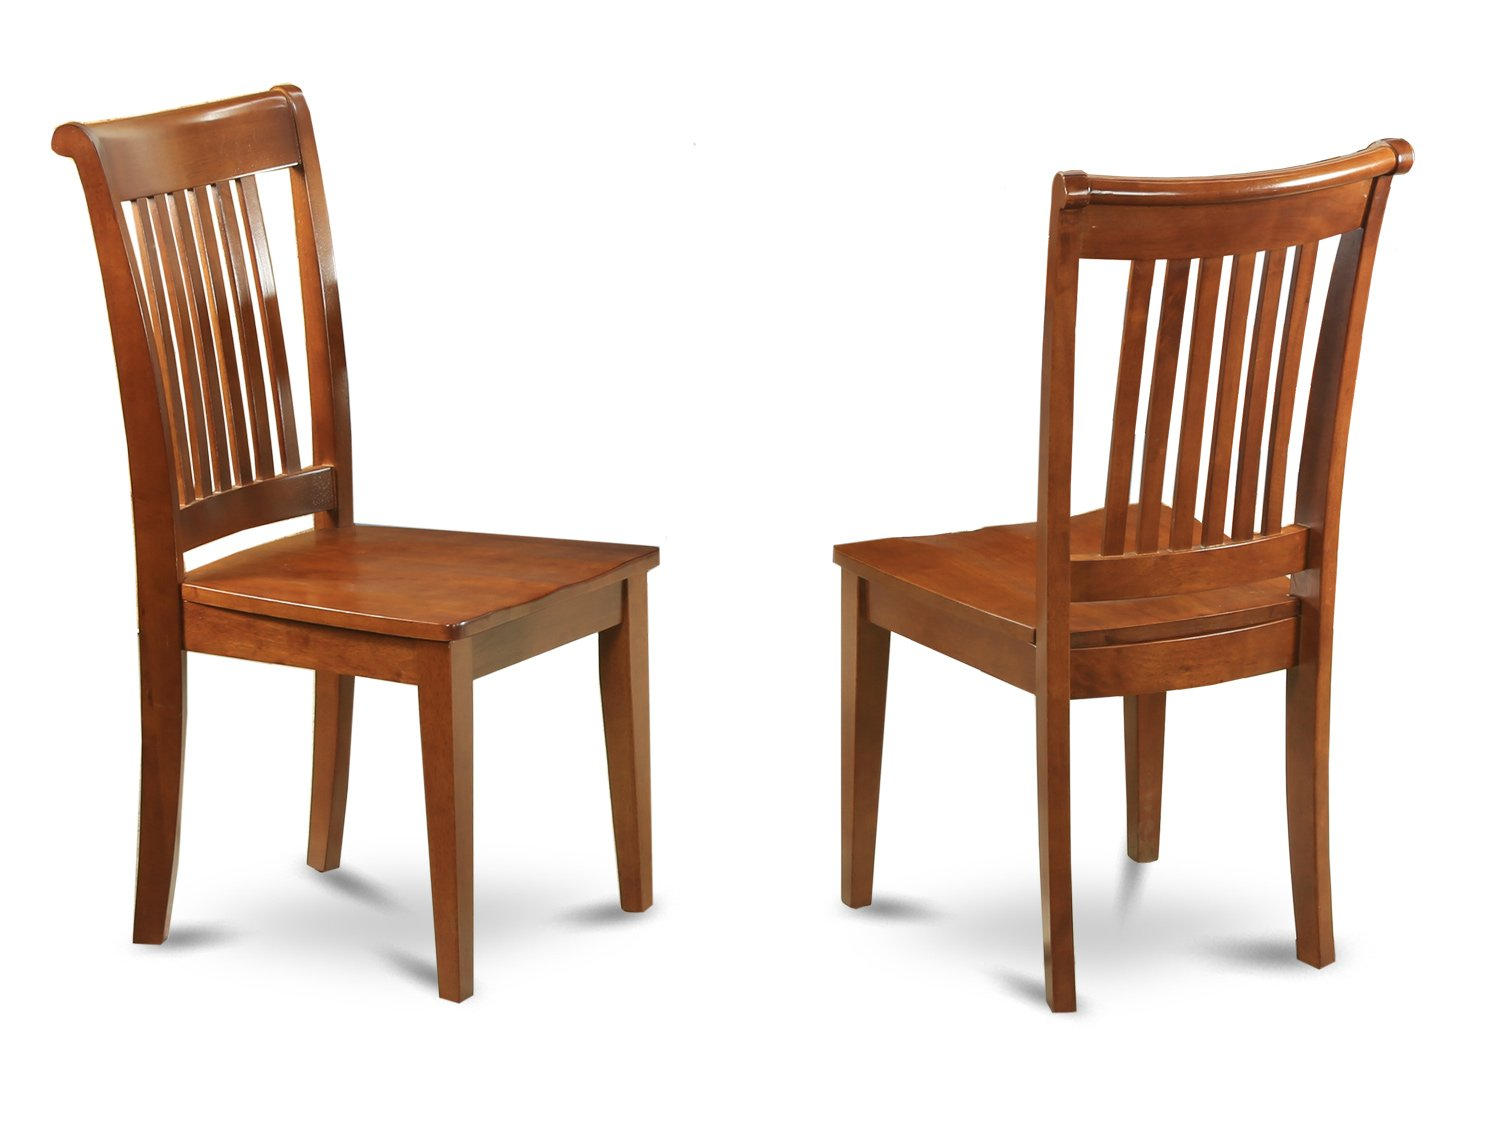 Set of 2 Portland  vertical slat back dining room chairs in Saddle Brown finish.